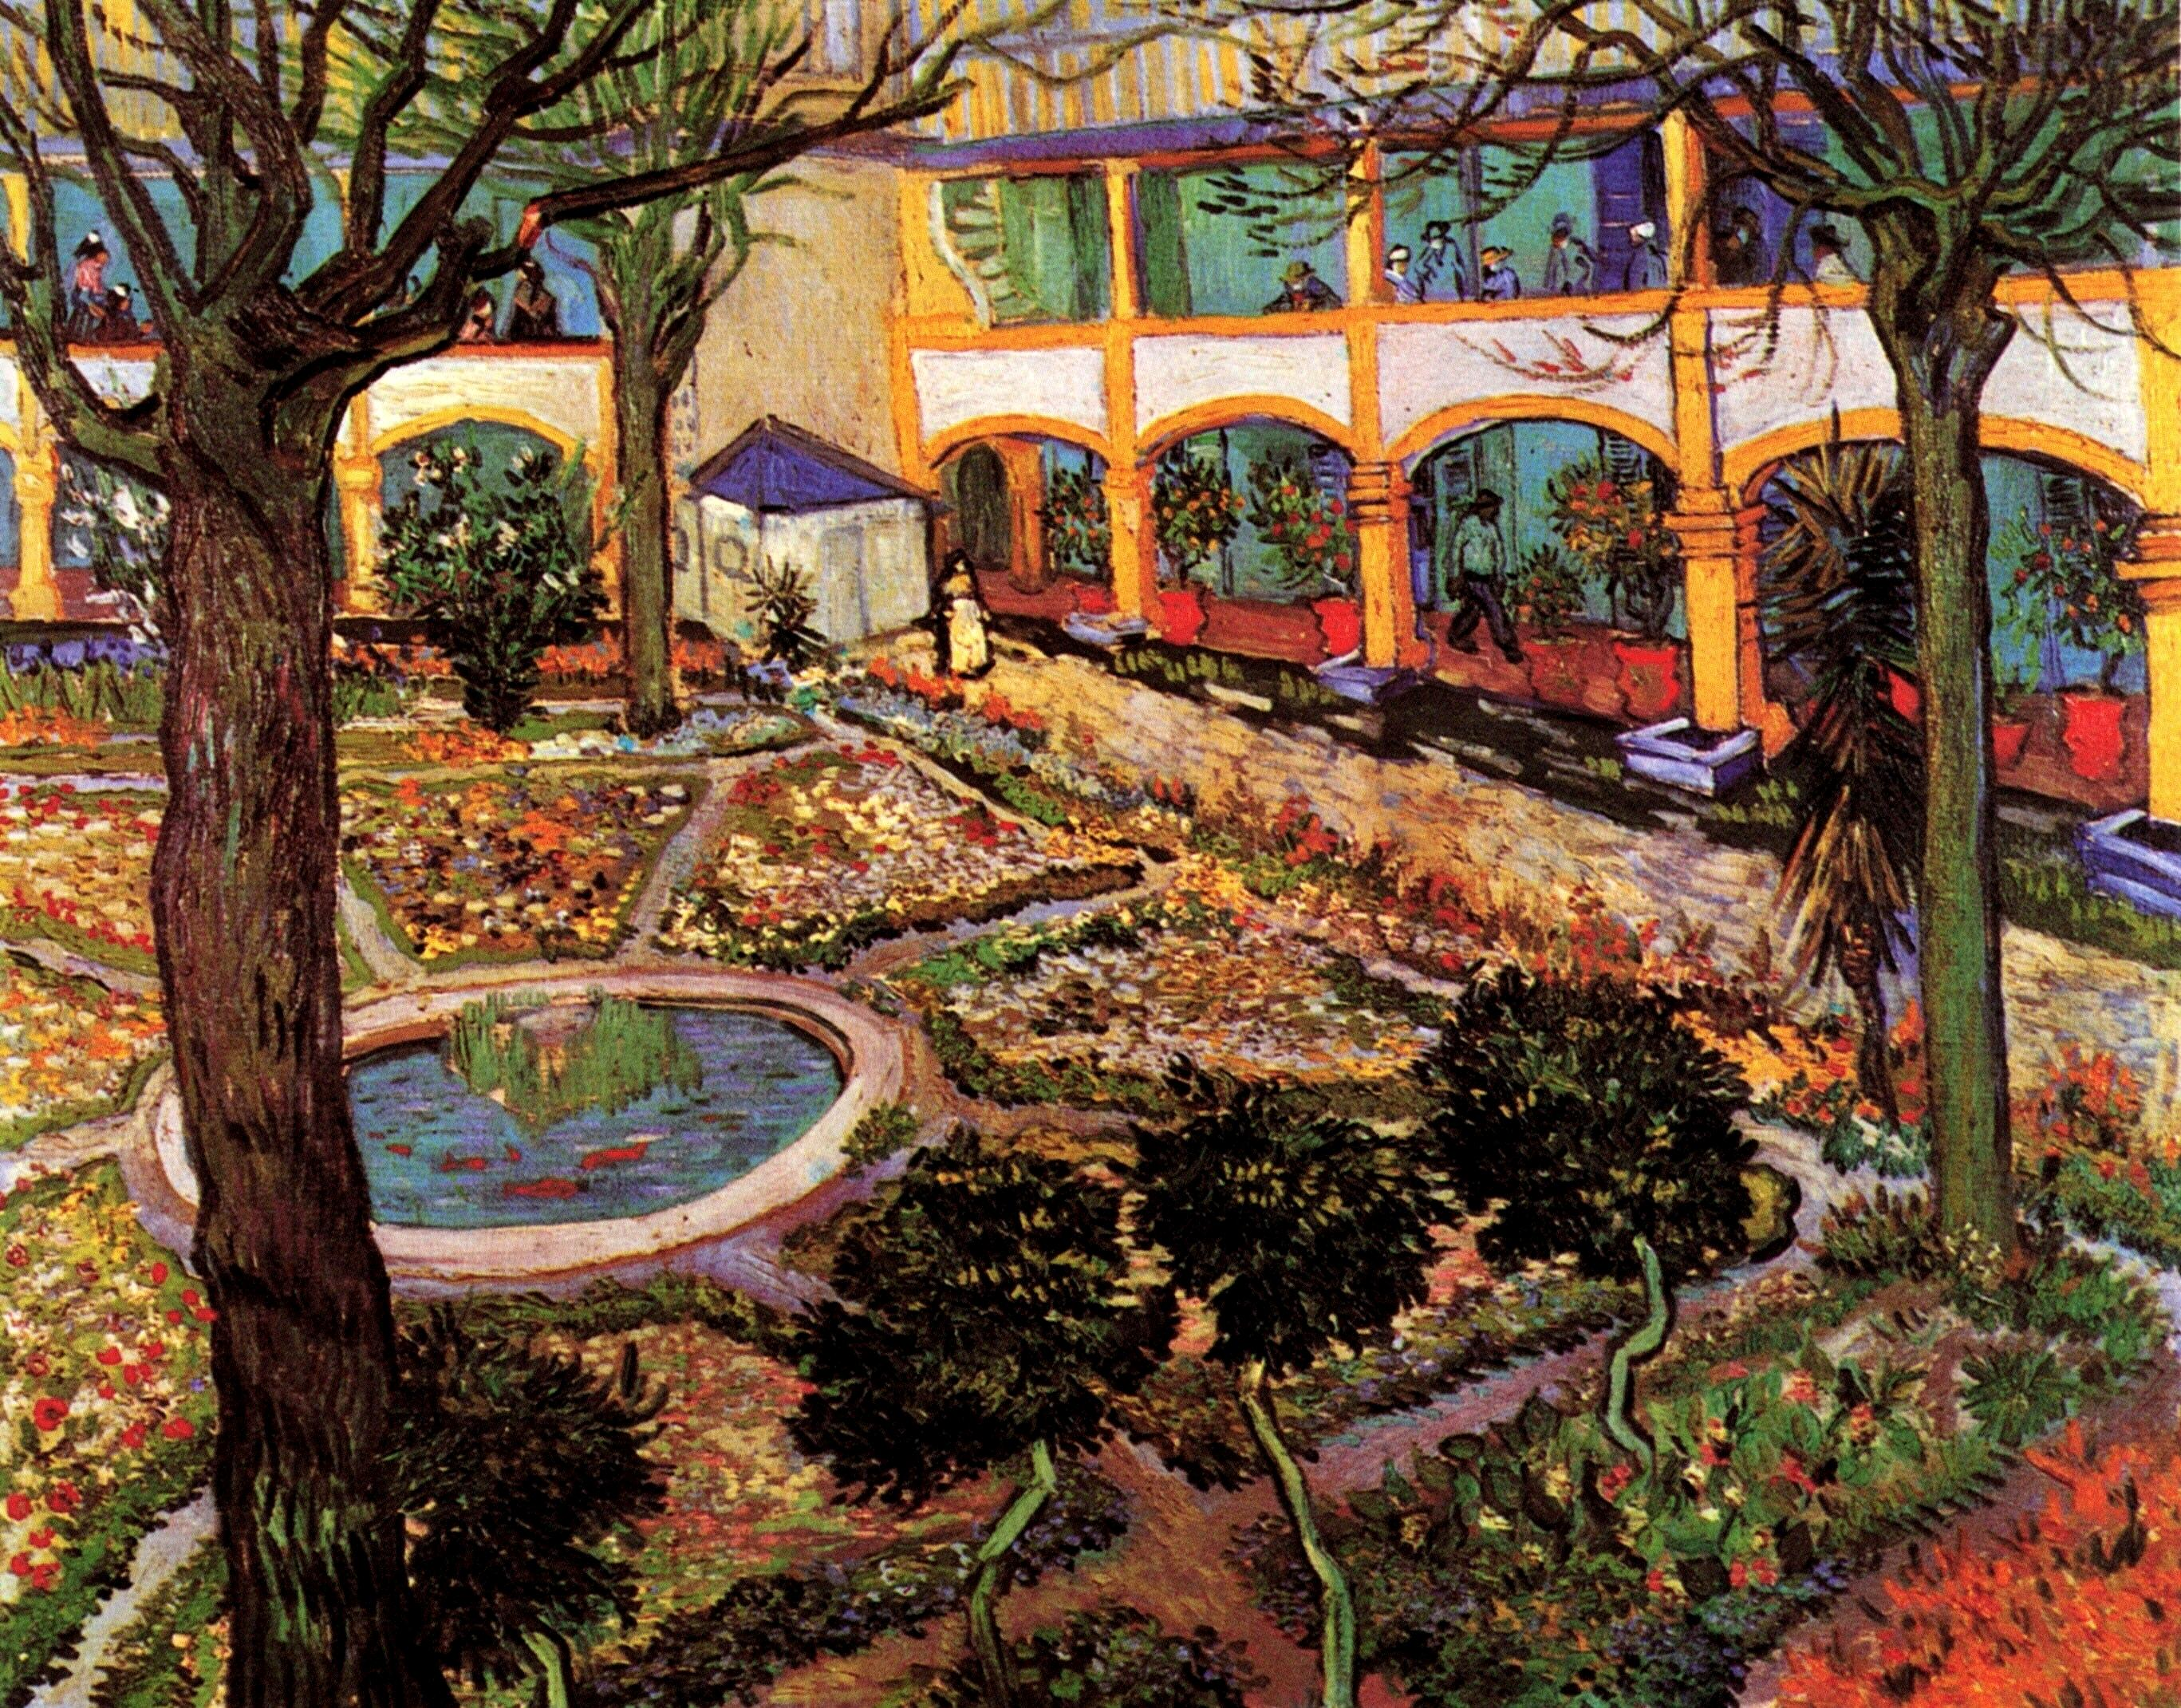 Van Gogh The Courtyard Of The Hospital At Arles 1889 With Description Art Vangogh Com,The Animals House Of The Rising Sun Chords Guitar